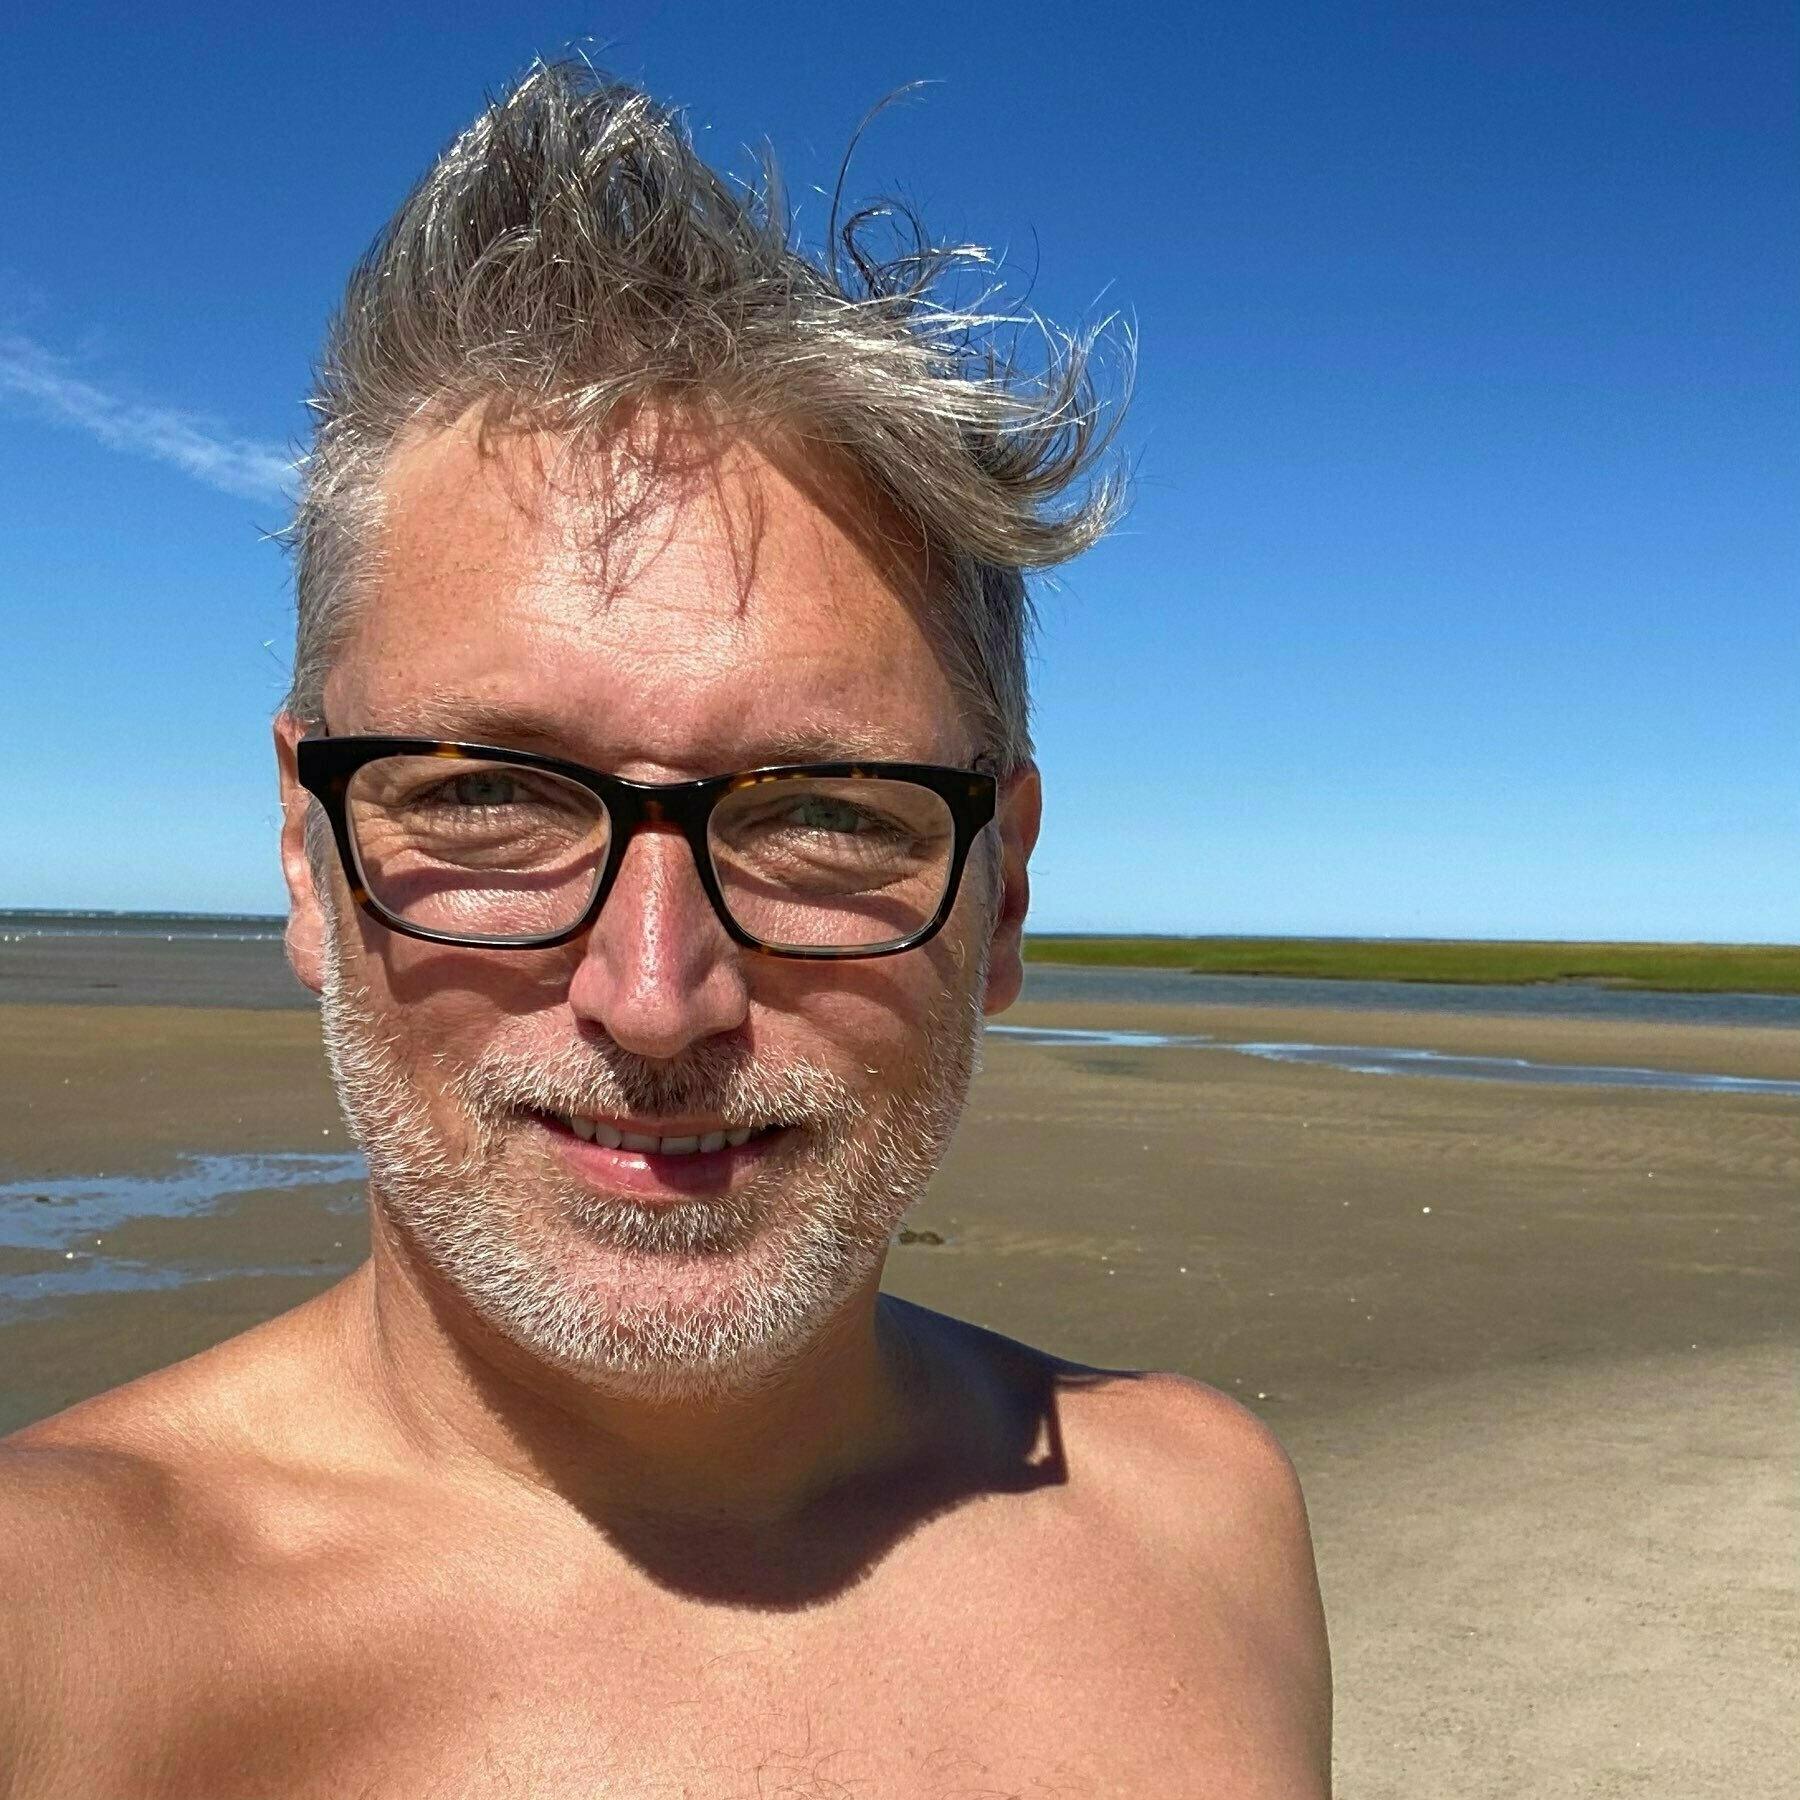 Selfie with no shirt, hair pointing in two Got my hair fixed up real nice. directions, and a long flat beach behind me.